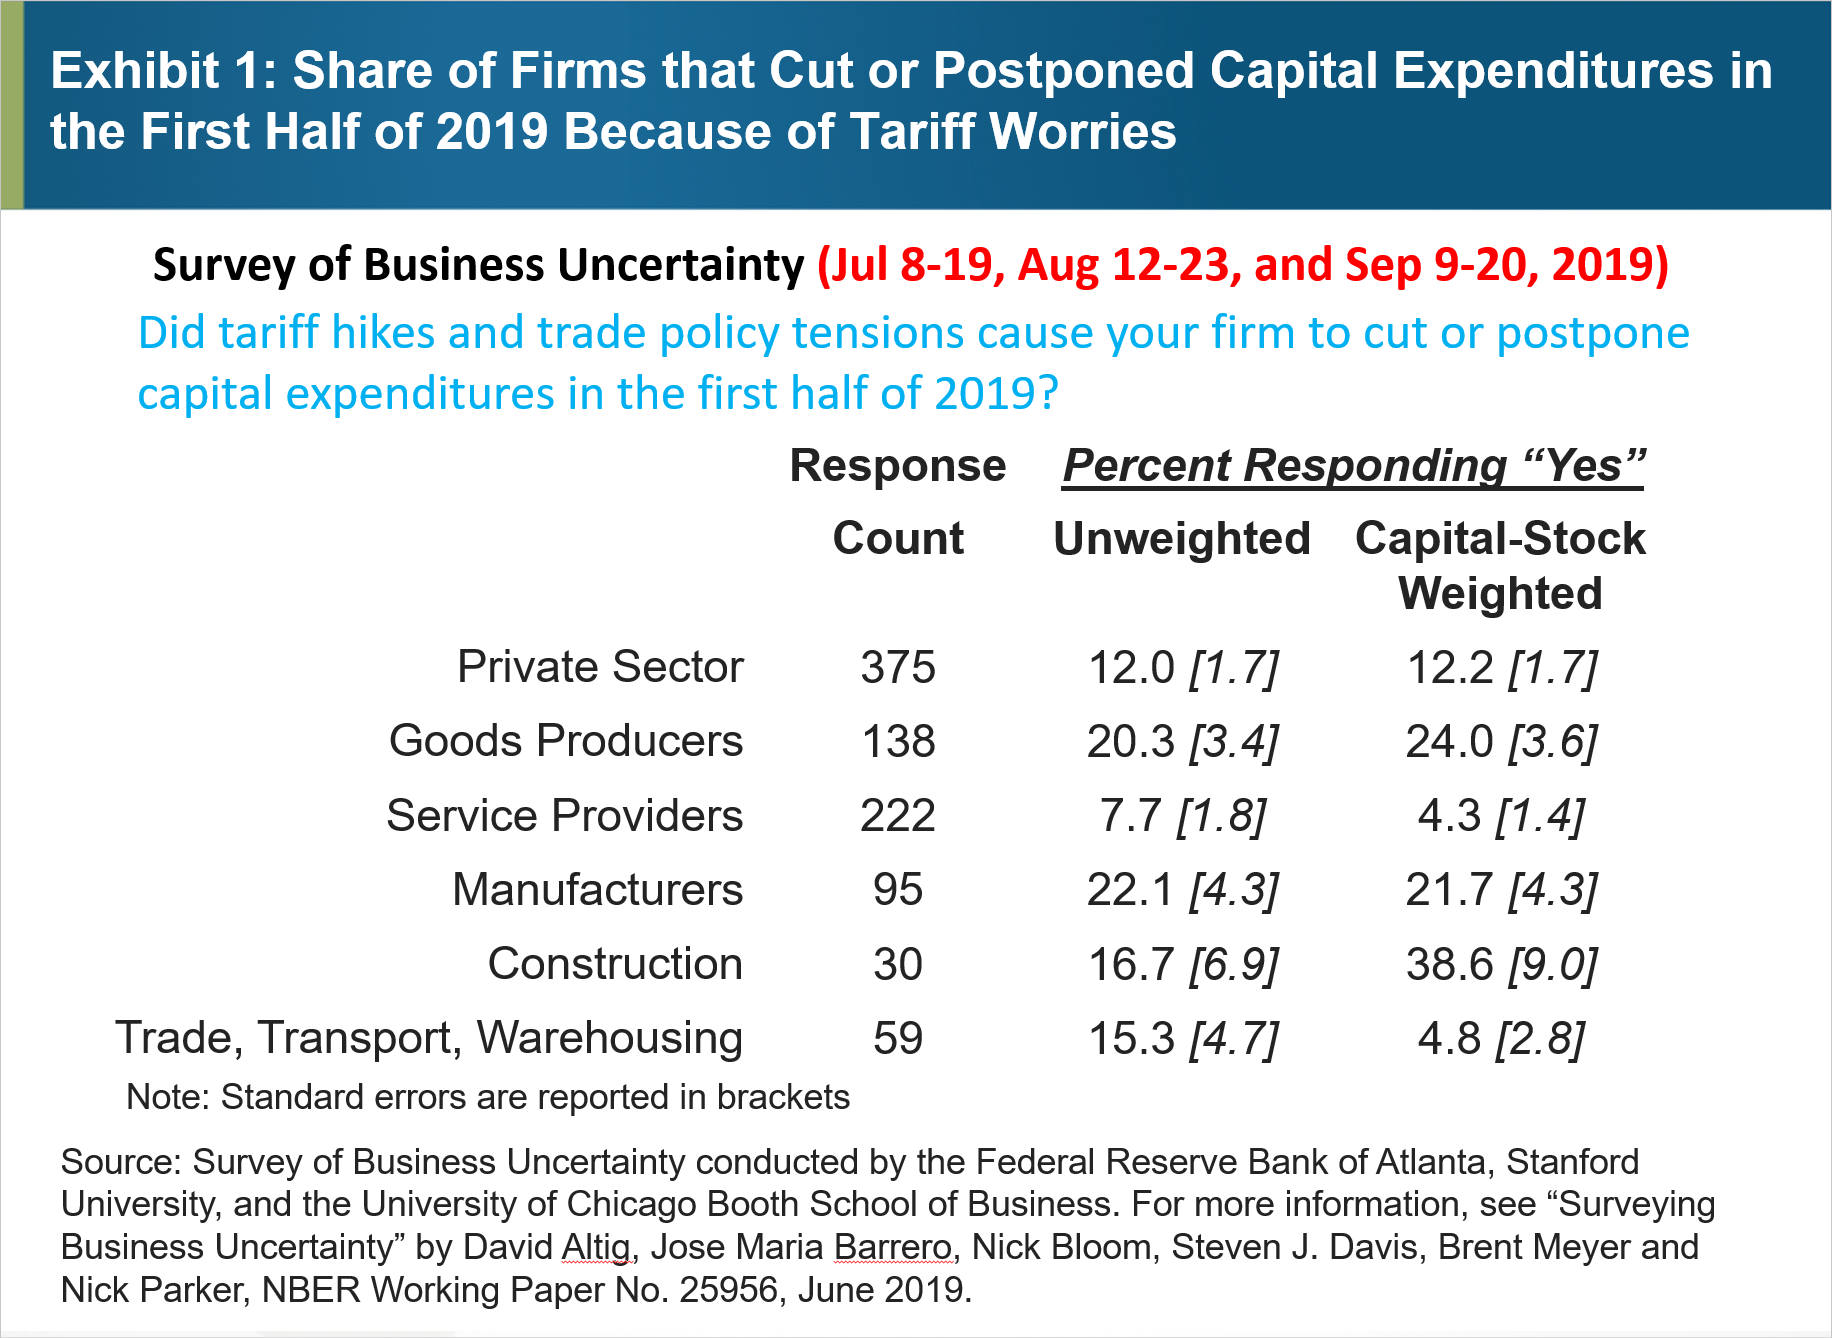 Exhibit 1: Share of Firms that Cut or Postponed Capital Expenditures in the First Half of 2019 Because of Tariff Worries